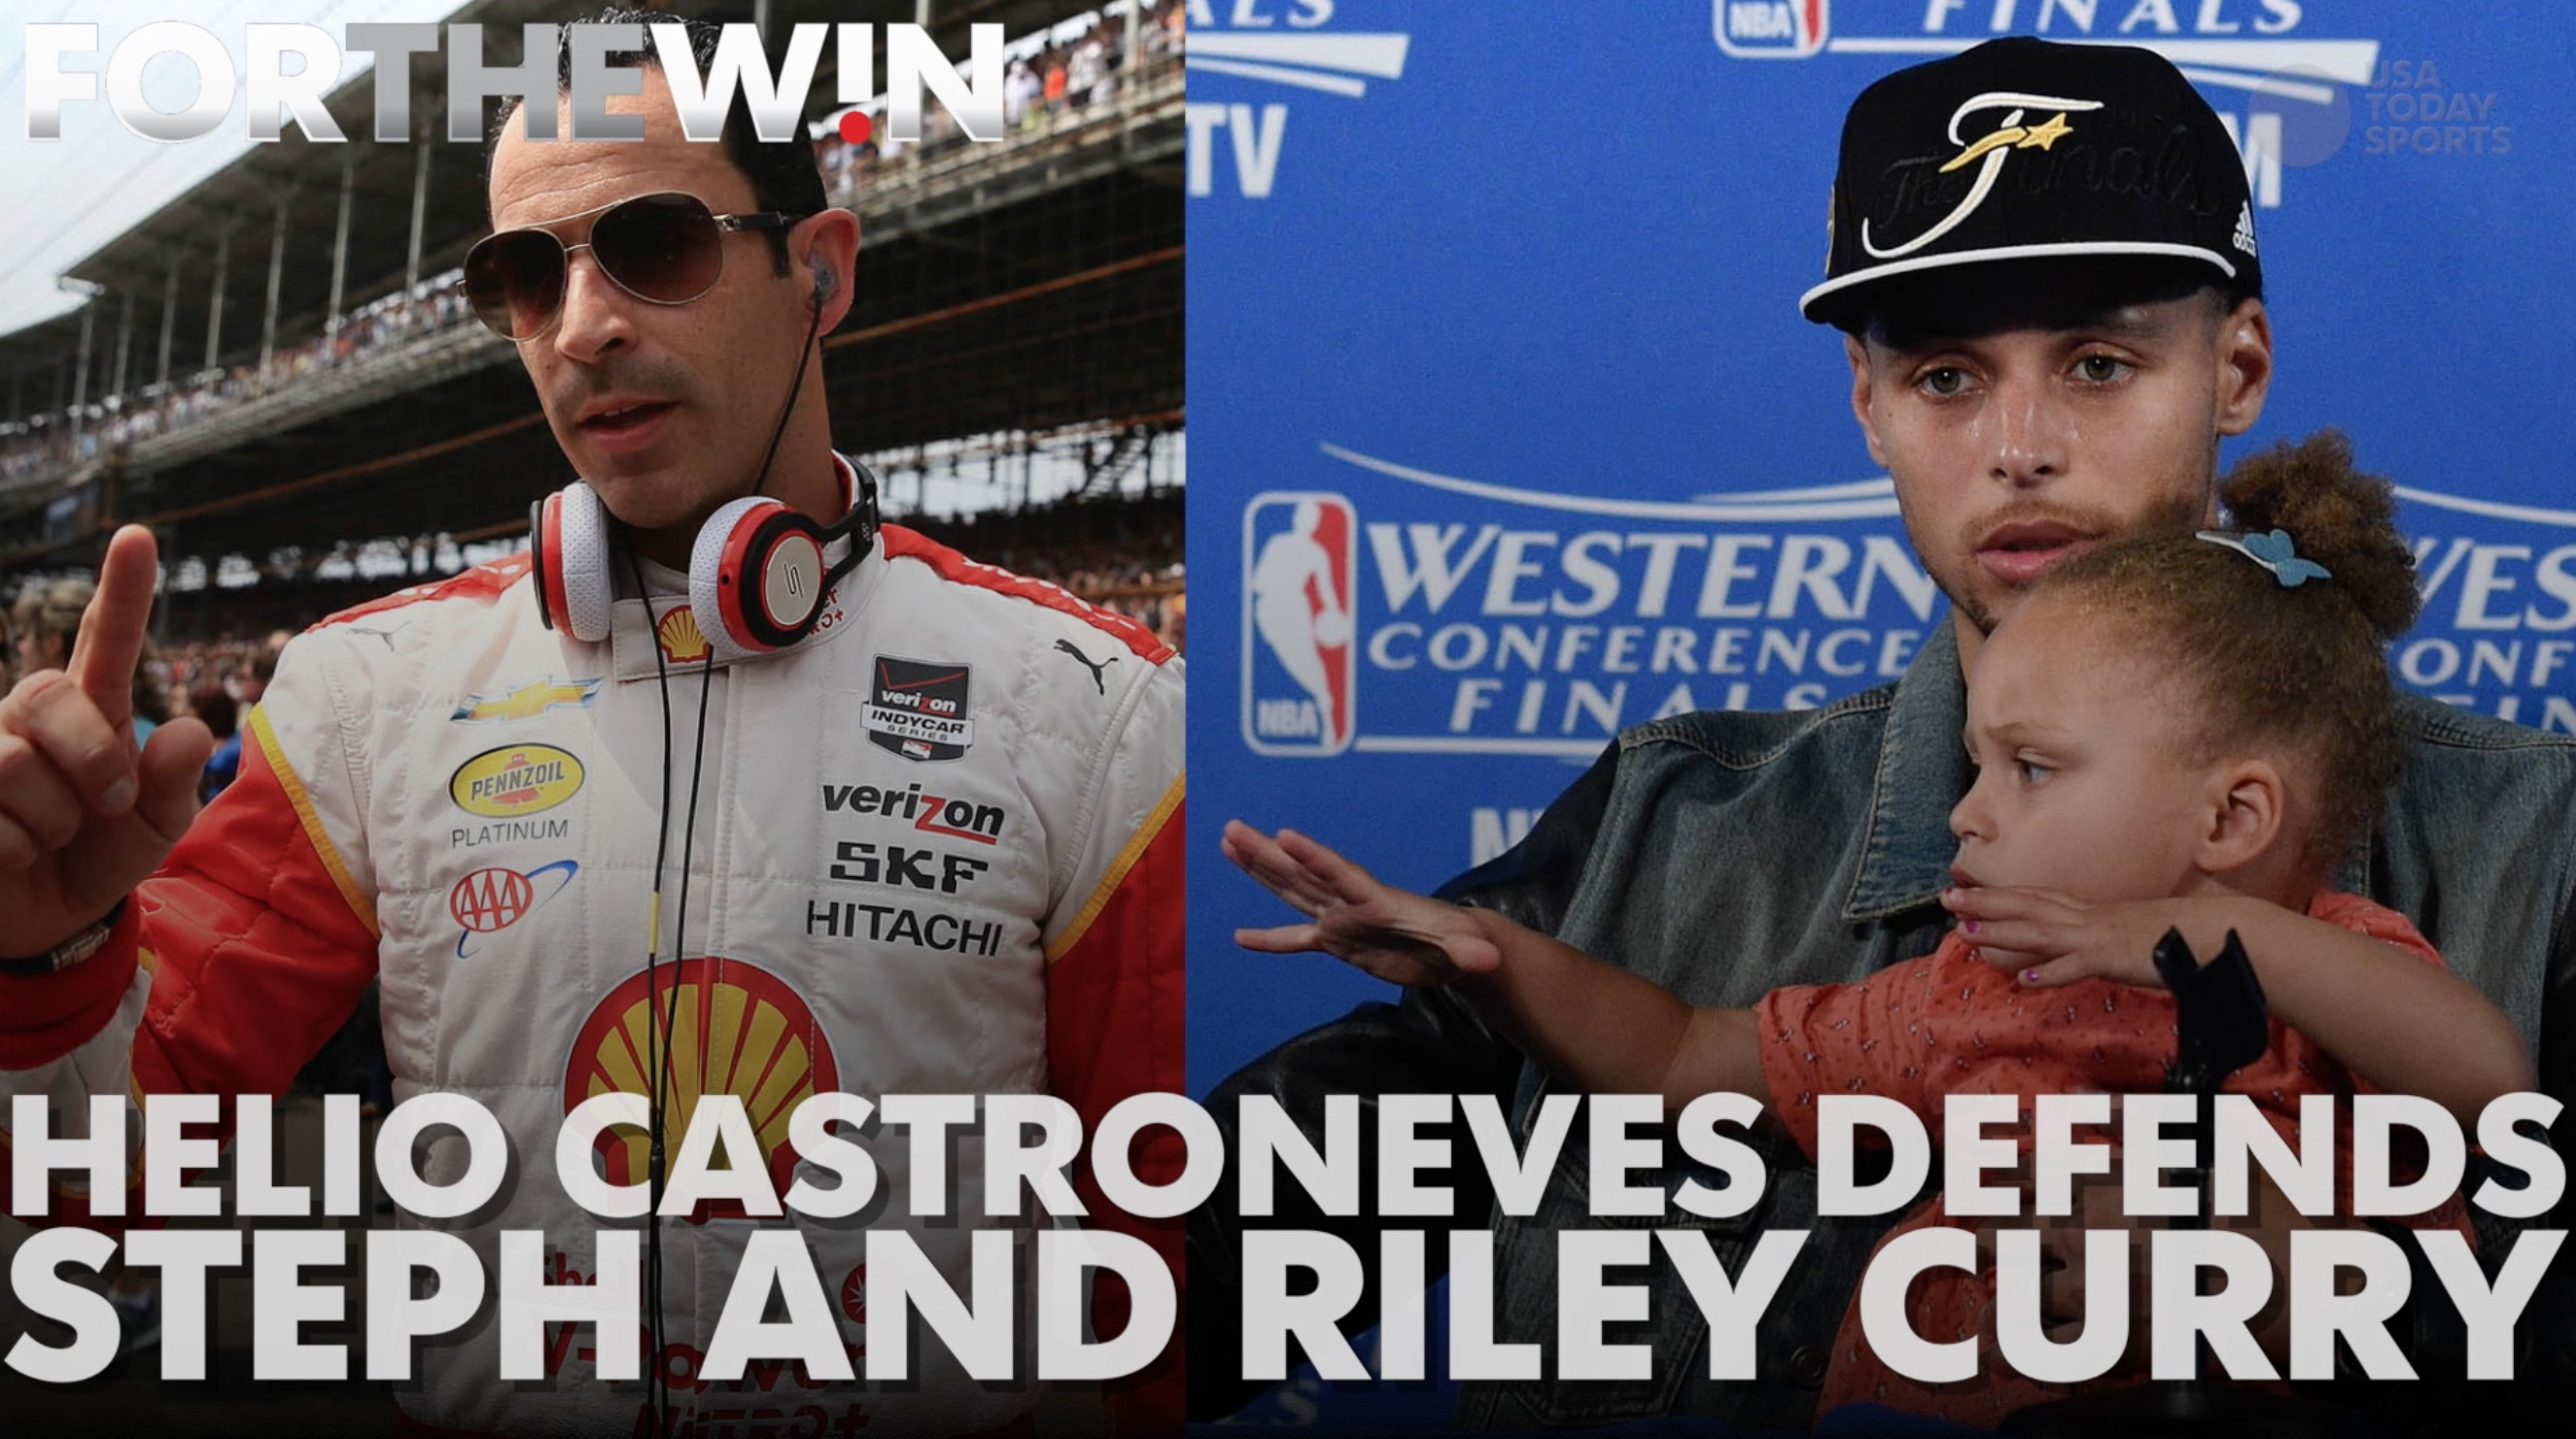 Helio Castroneves defends Steph Curry's decision to bring his daughter to press conferences